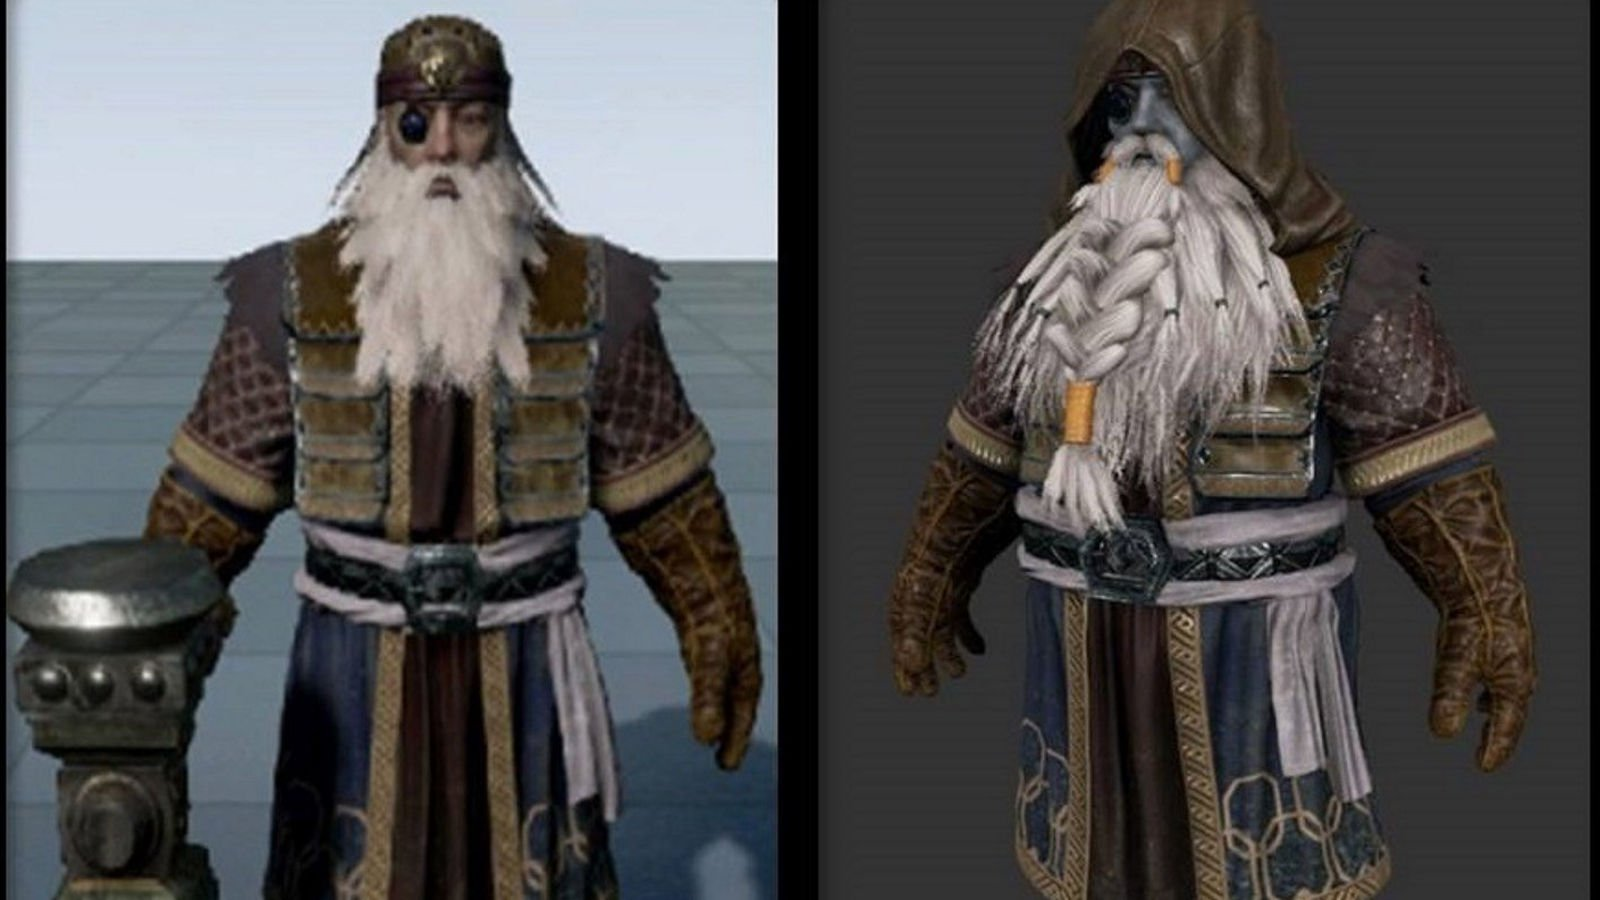 Dwarf improvement